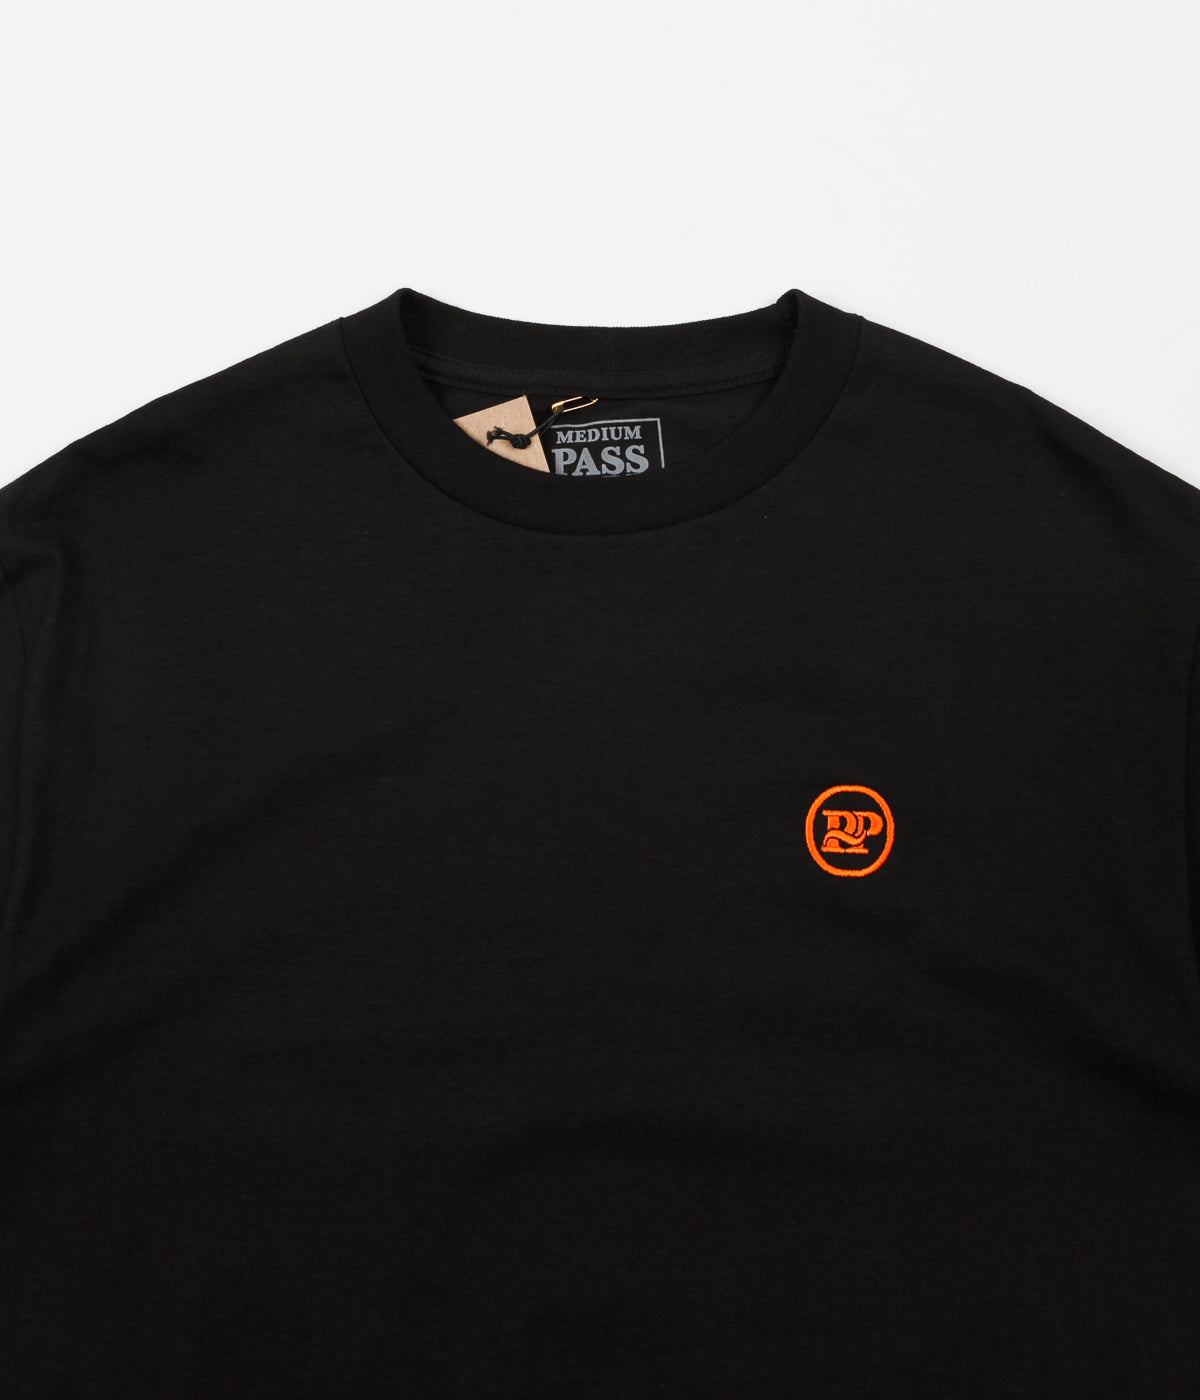 Pass Port P~P Works Embroidered T-Shirt - Black